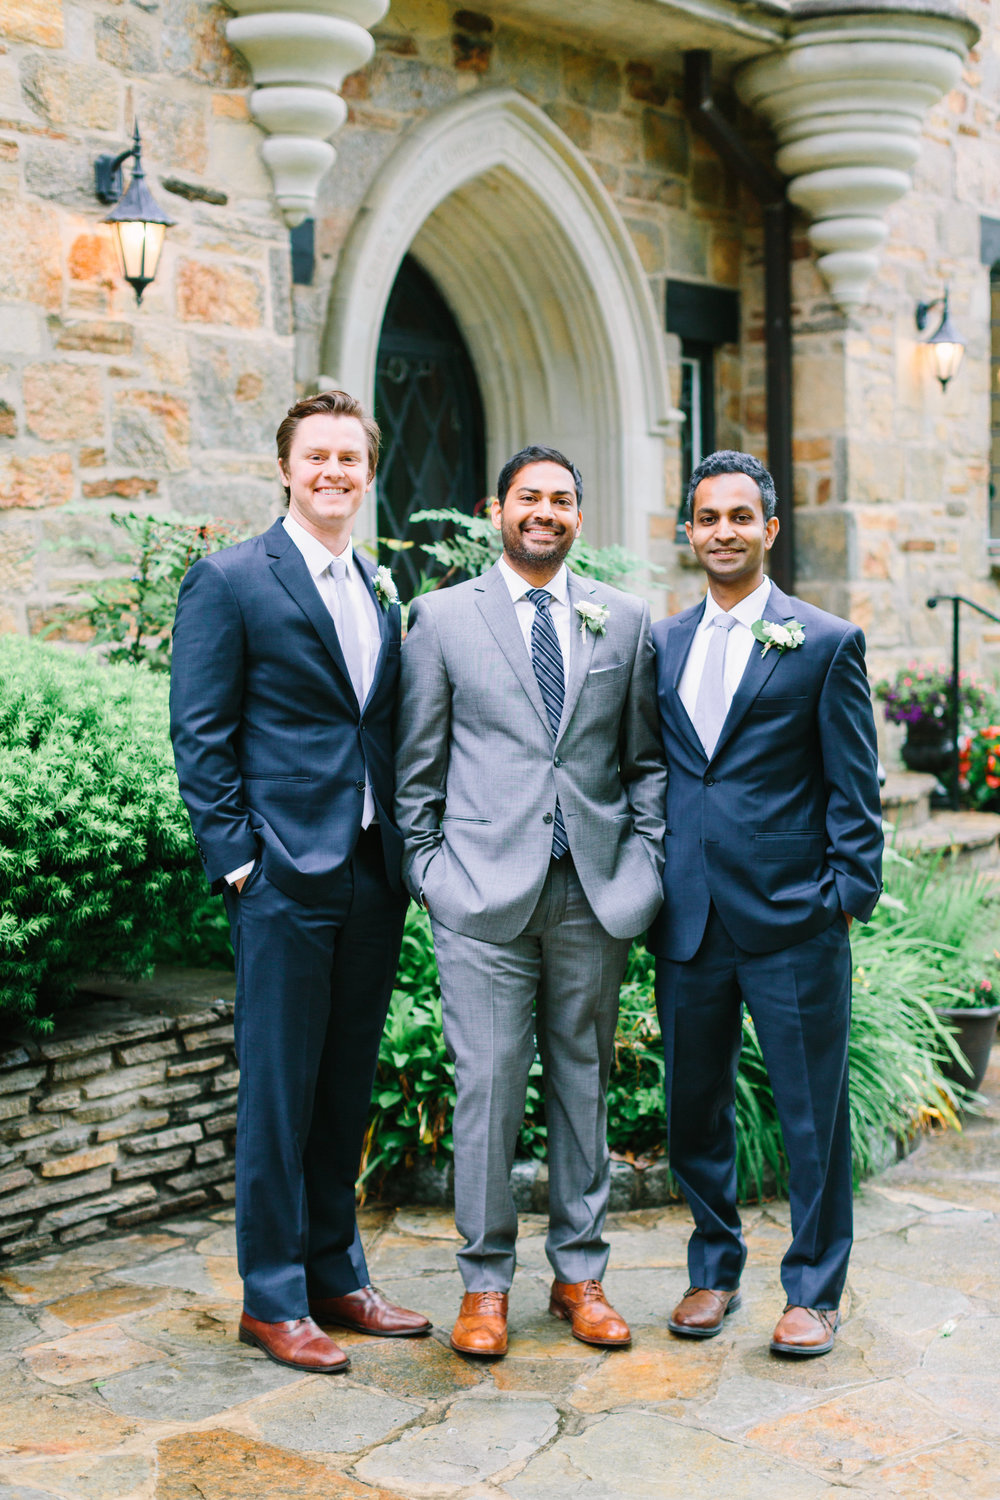 Cloisters Wedding by Nicki Metcalf Photography and East Made Event Company-0085.jpg